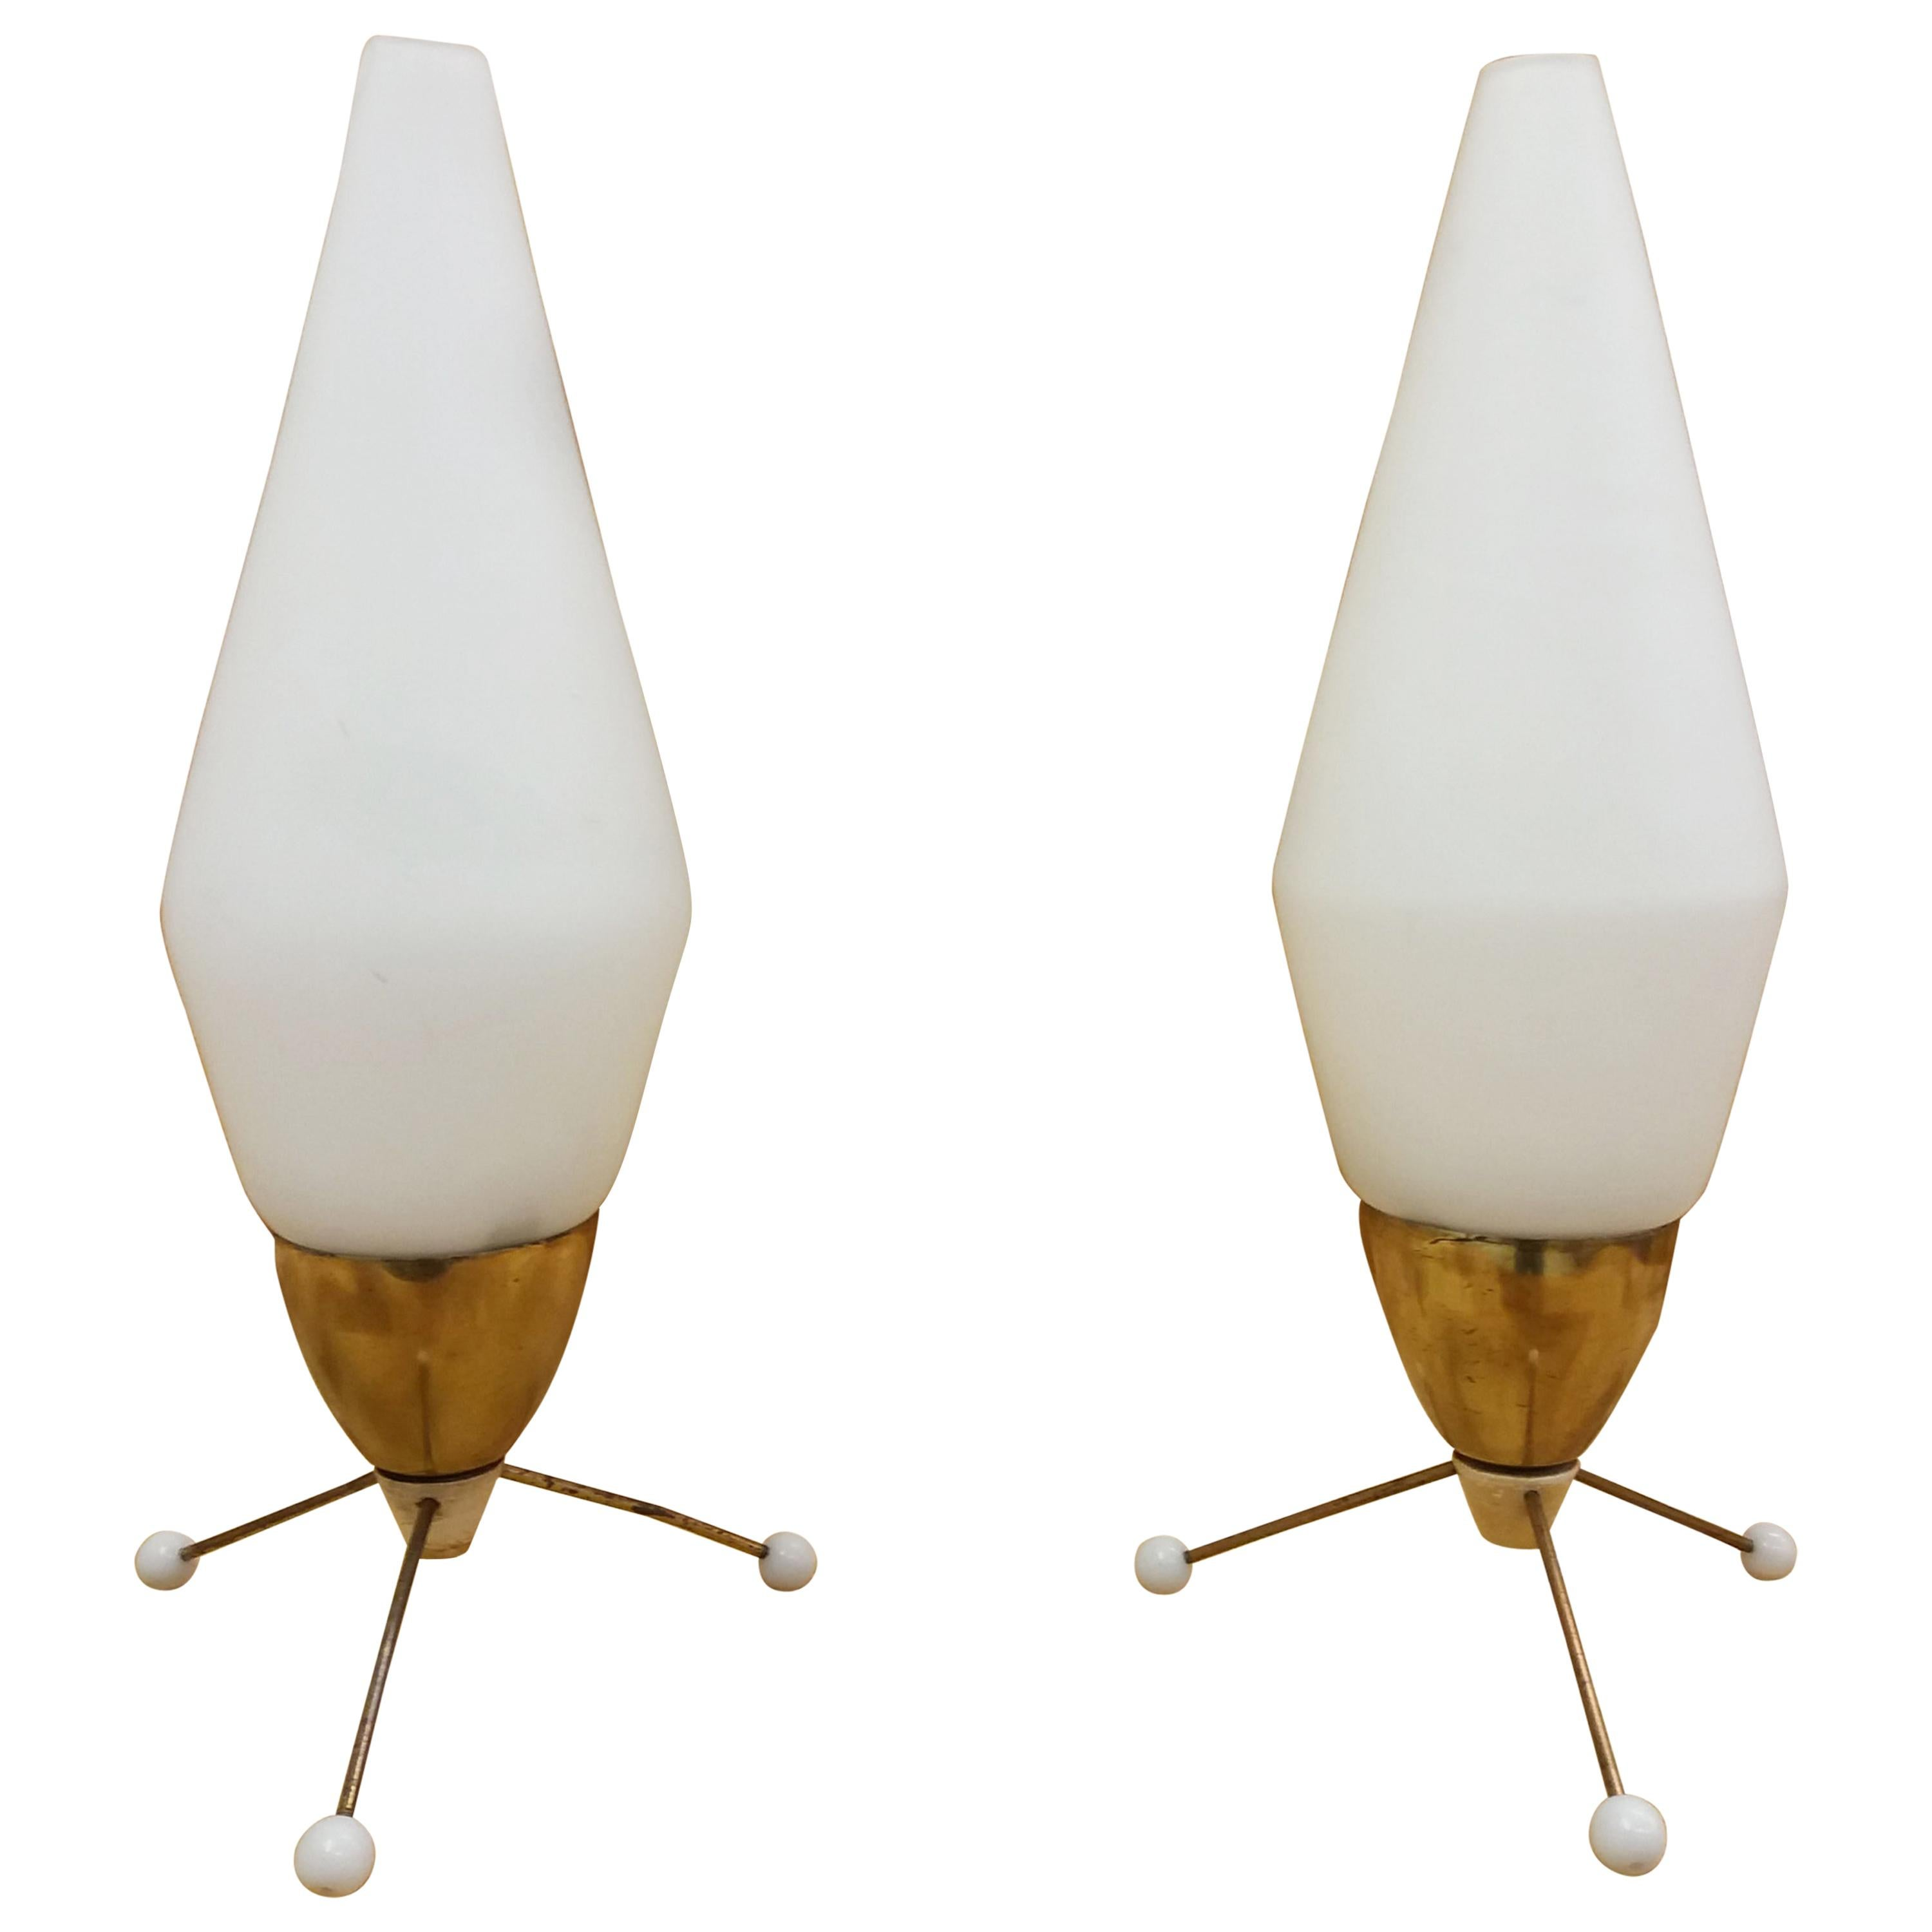 Set of Two Table Lamp, Rocket, 1960s